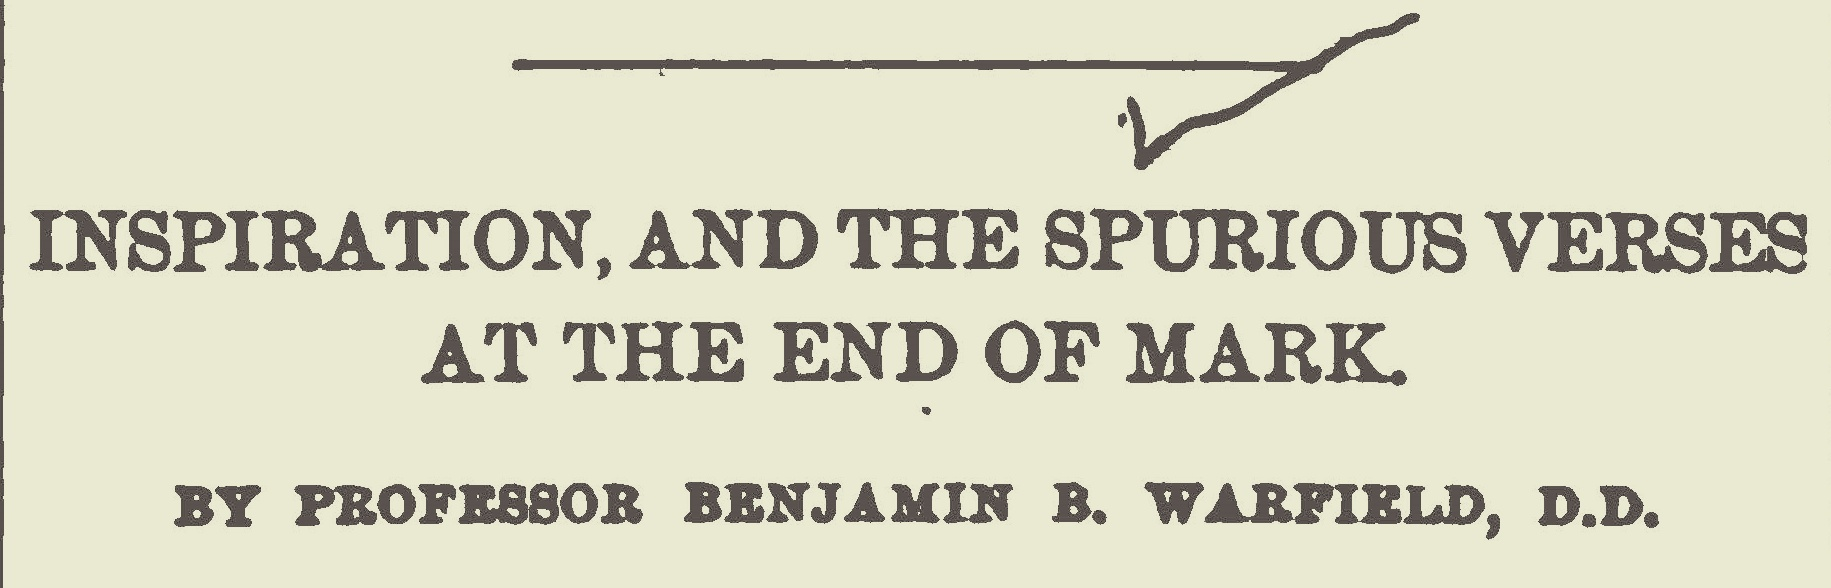 Warfield, Benjamin Breckinridge, Inspiration and the Spurious Verses at the End of Mark Title Page.jpg